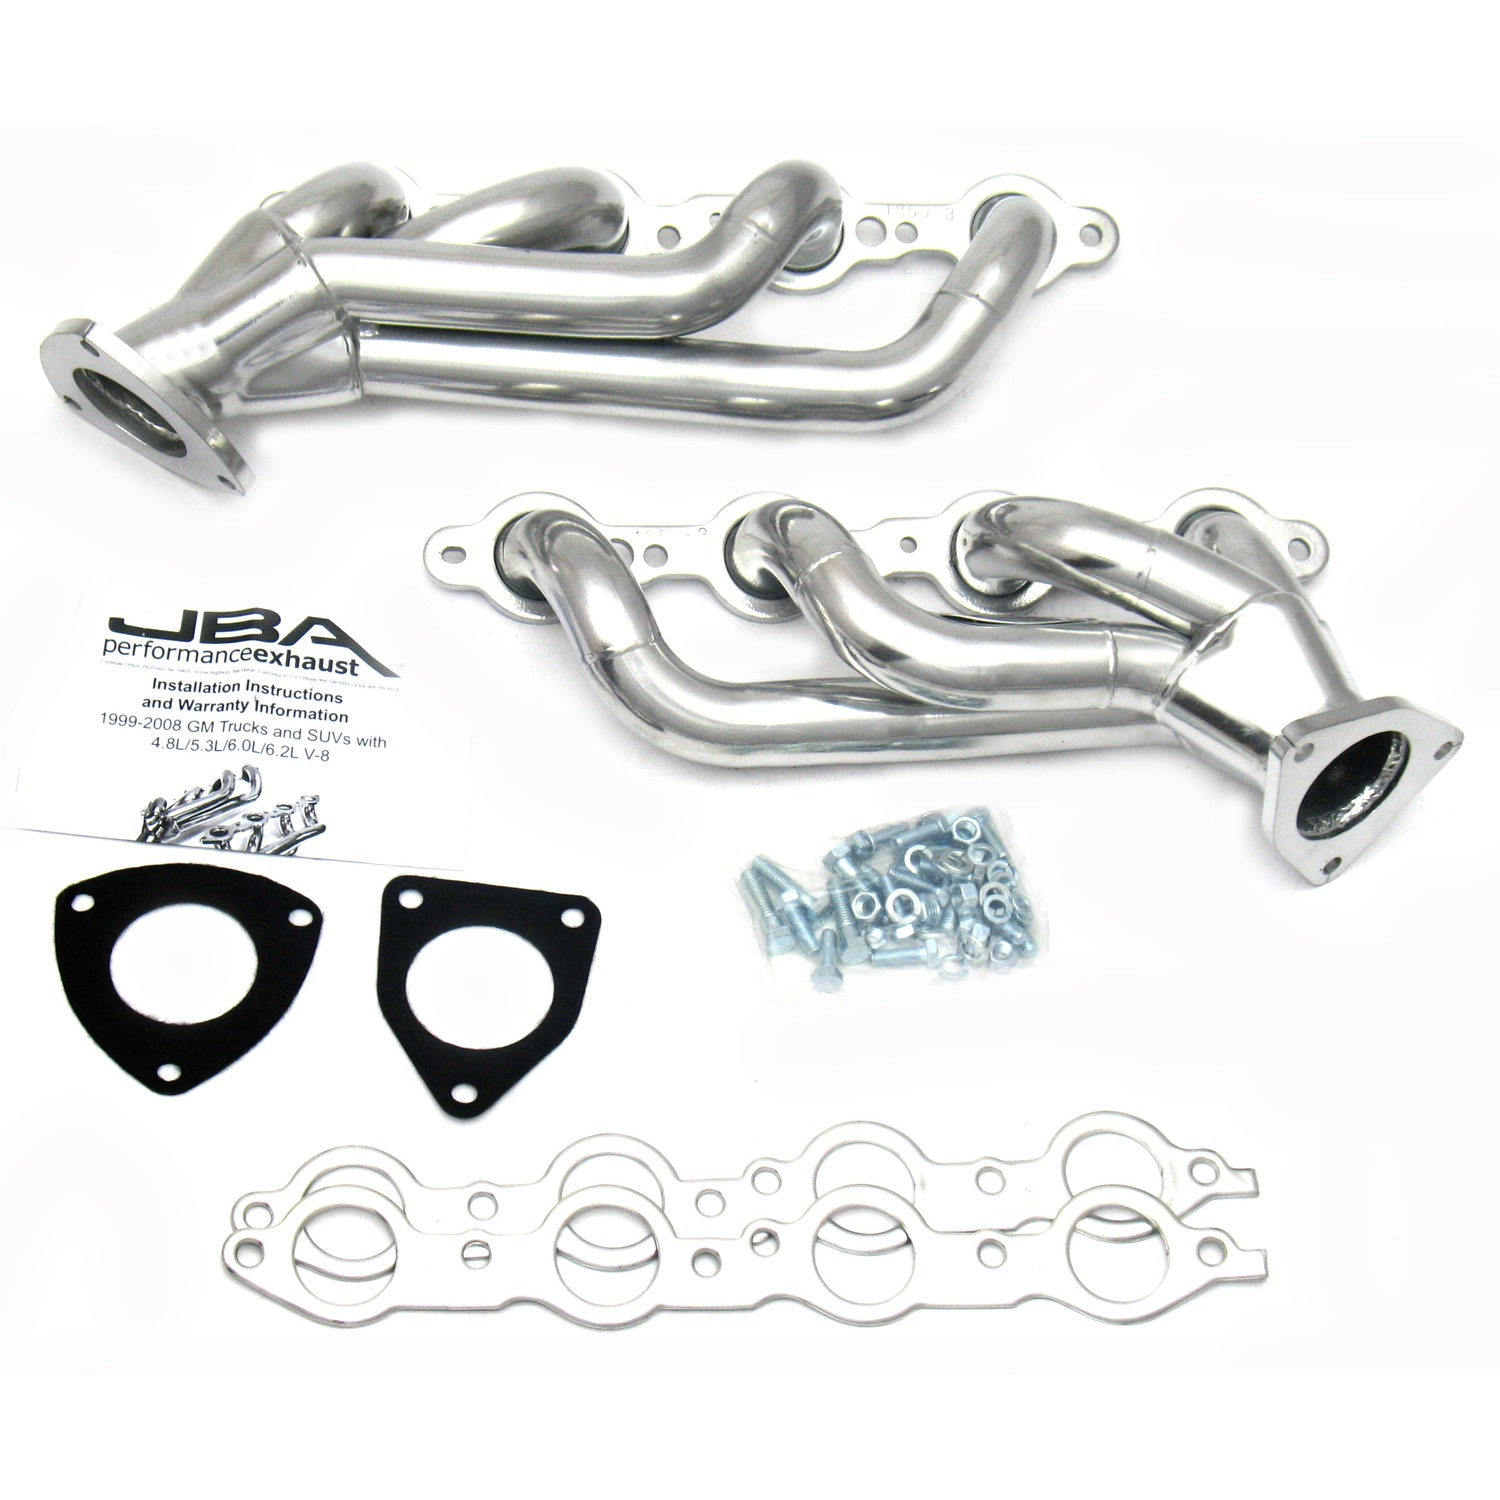 Jba S 3js 1 5 8 Shorty Stainless Steel Exhaust Header